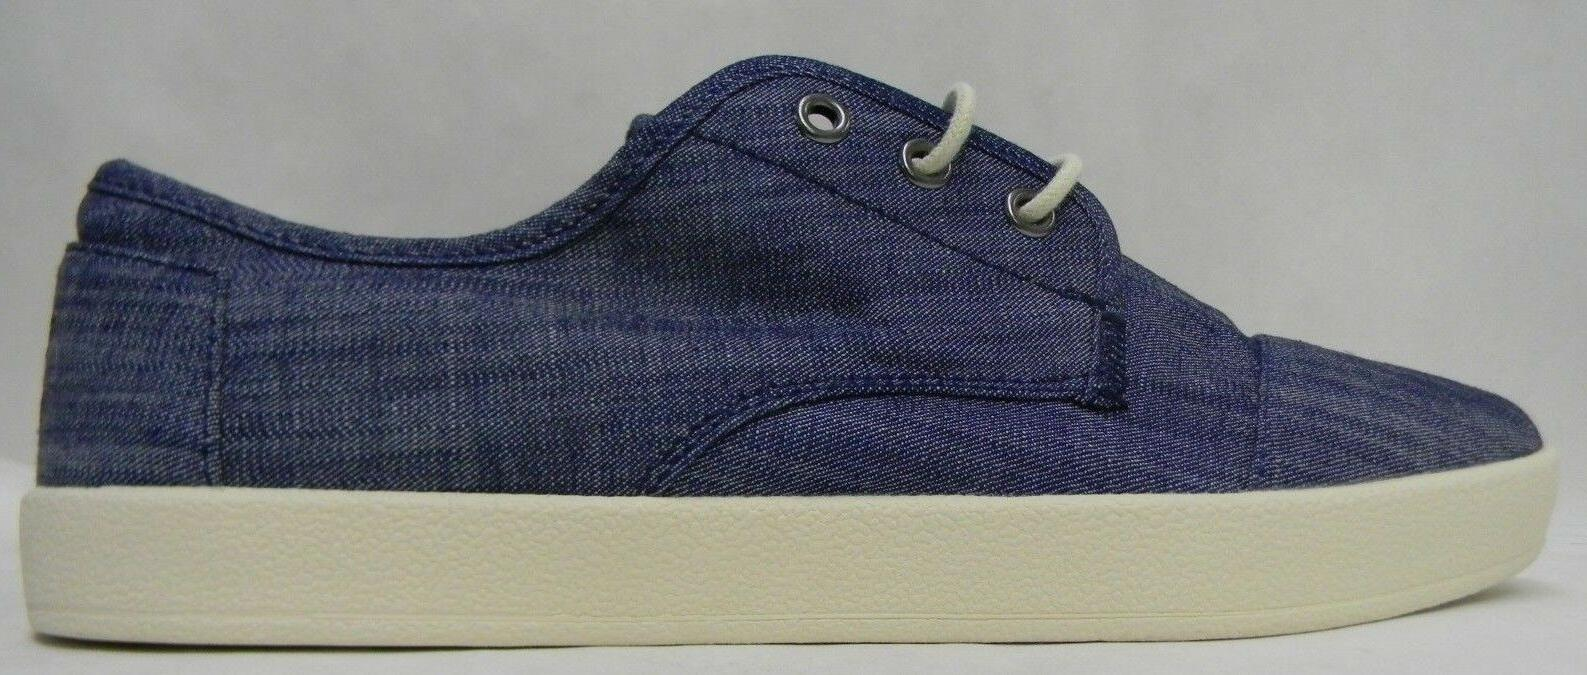 Toms Sneakers Paseo Canvas Choose Your Size New in Box